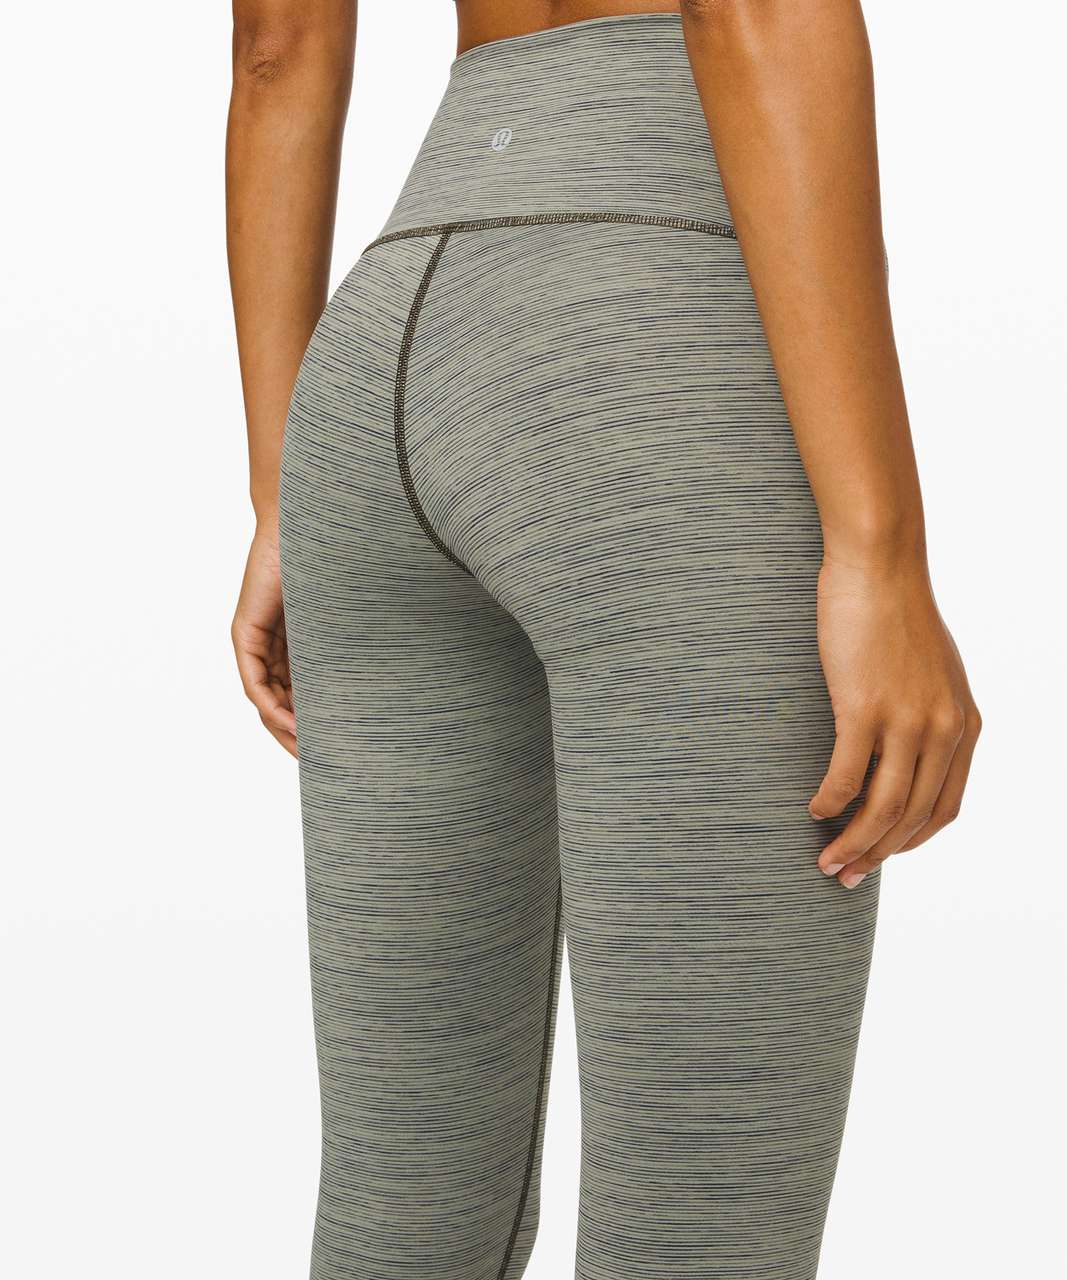 "Lululemon Wunder Under High Rise Tight 28"" *Luxtreme - Wee Are From Space Sage Dark Olive"